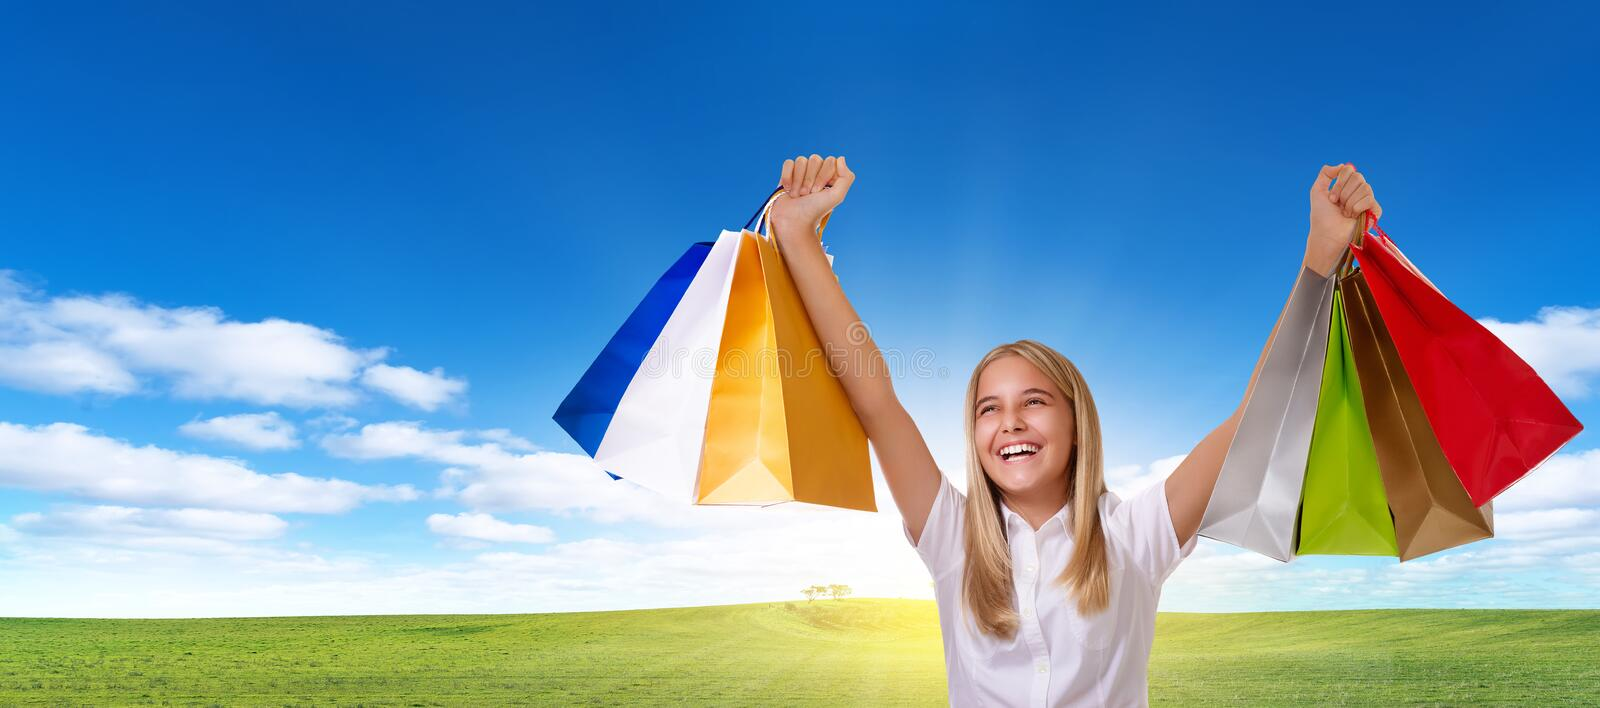 Shopping,holiday,tourism and people concept - young cheerful girl with shopping bags with copyspace royalty free stock photo